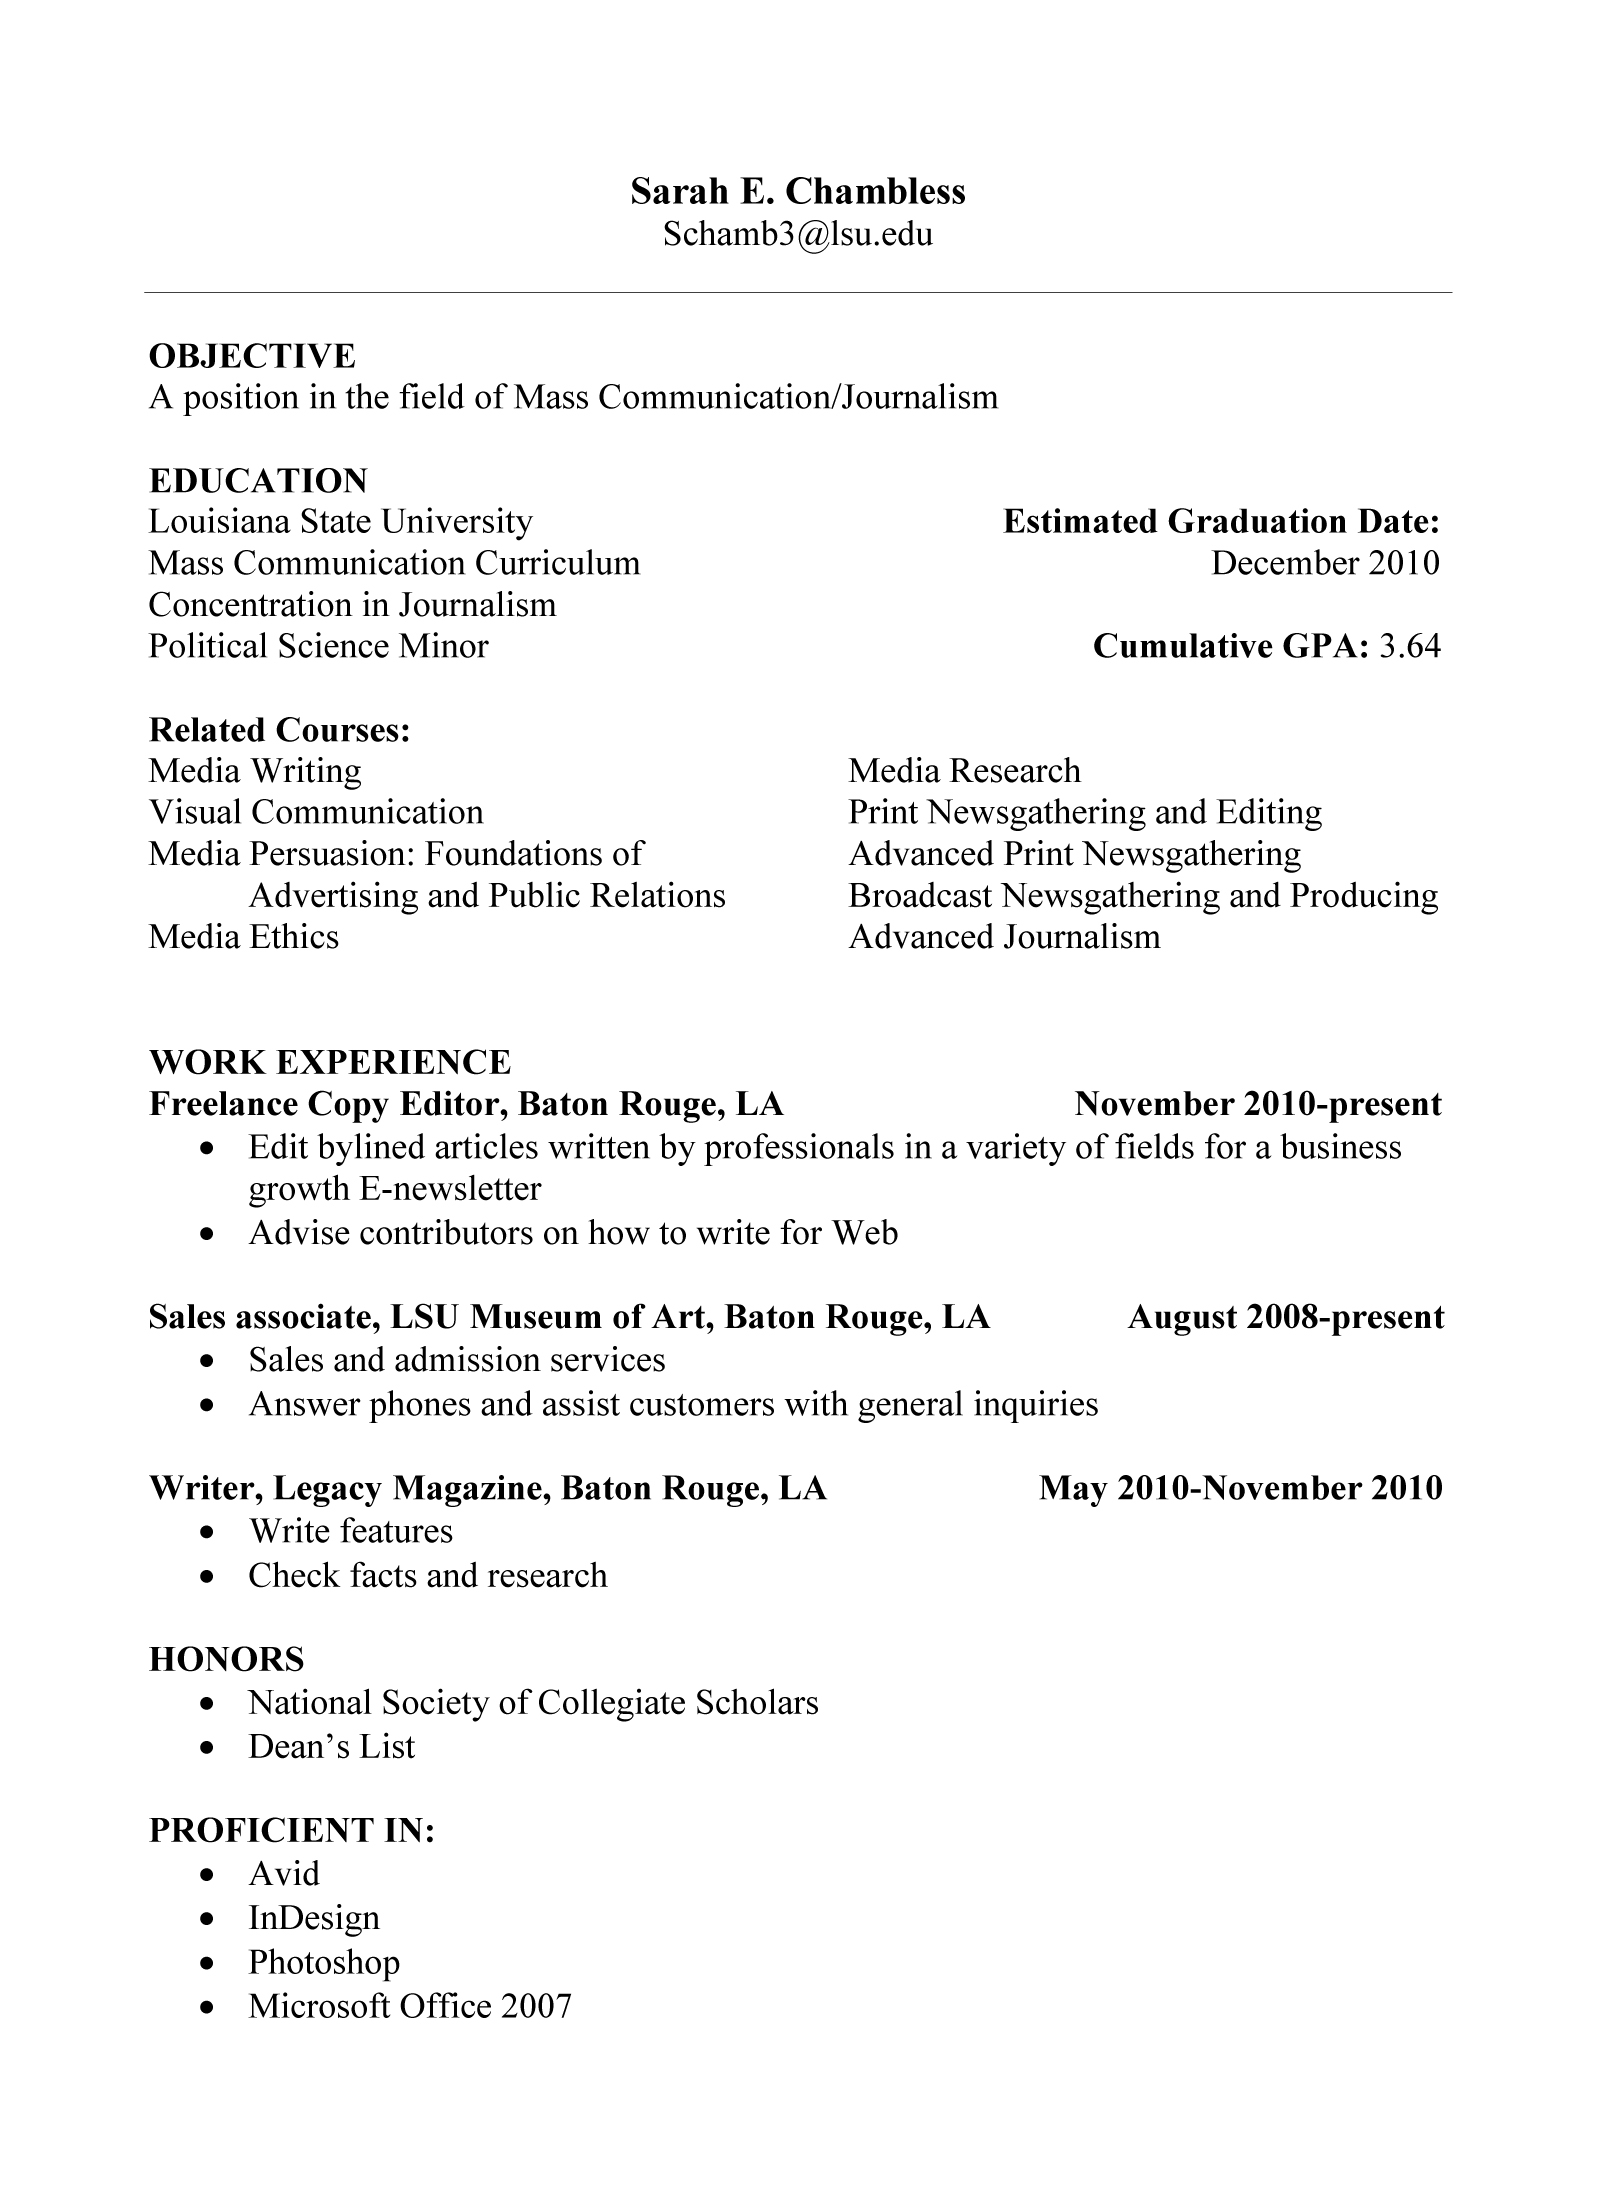 Resume For Inexperienced High School Student. High School Resume Template  Writing ...  High School Senior Resume For College